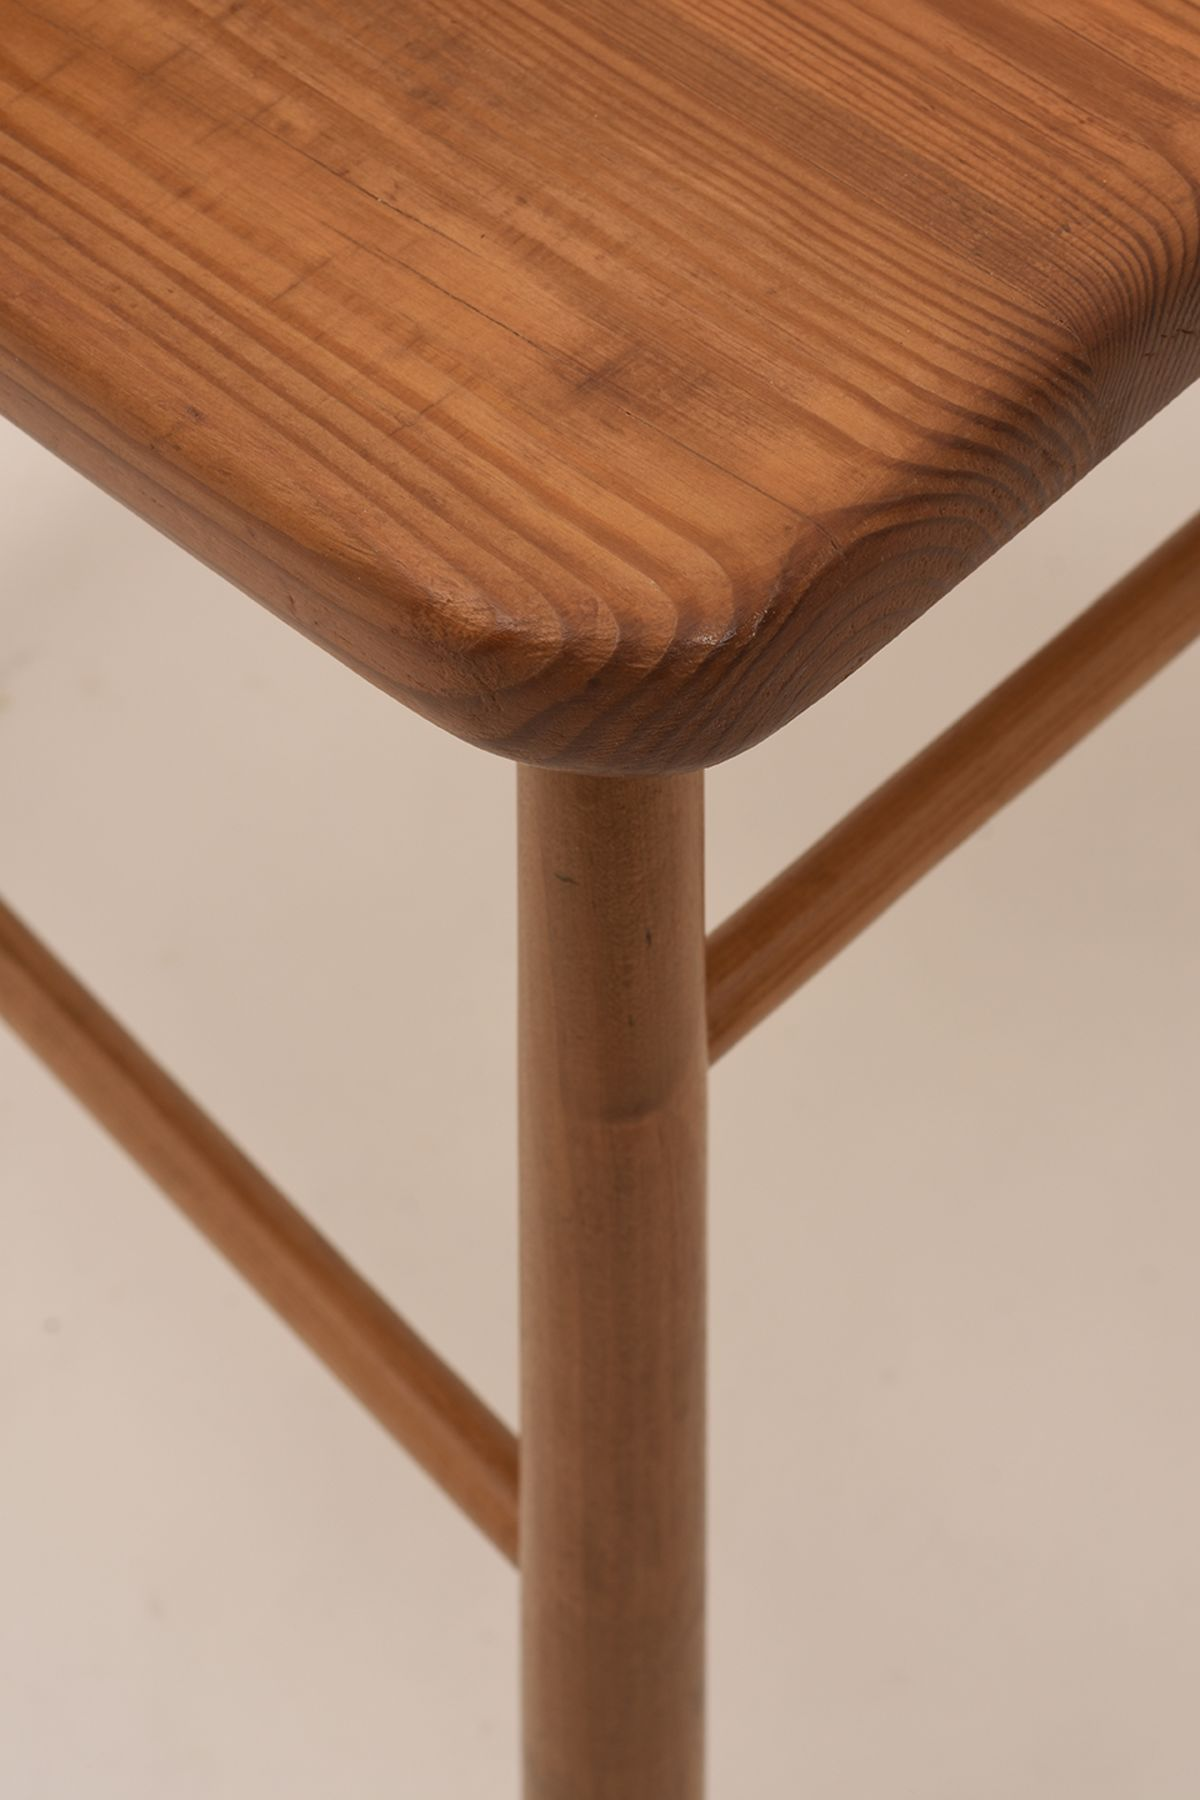 Aino-Aalto_Spindle-Chair_Detail-01